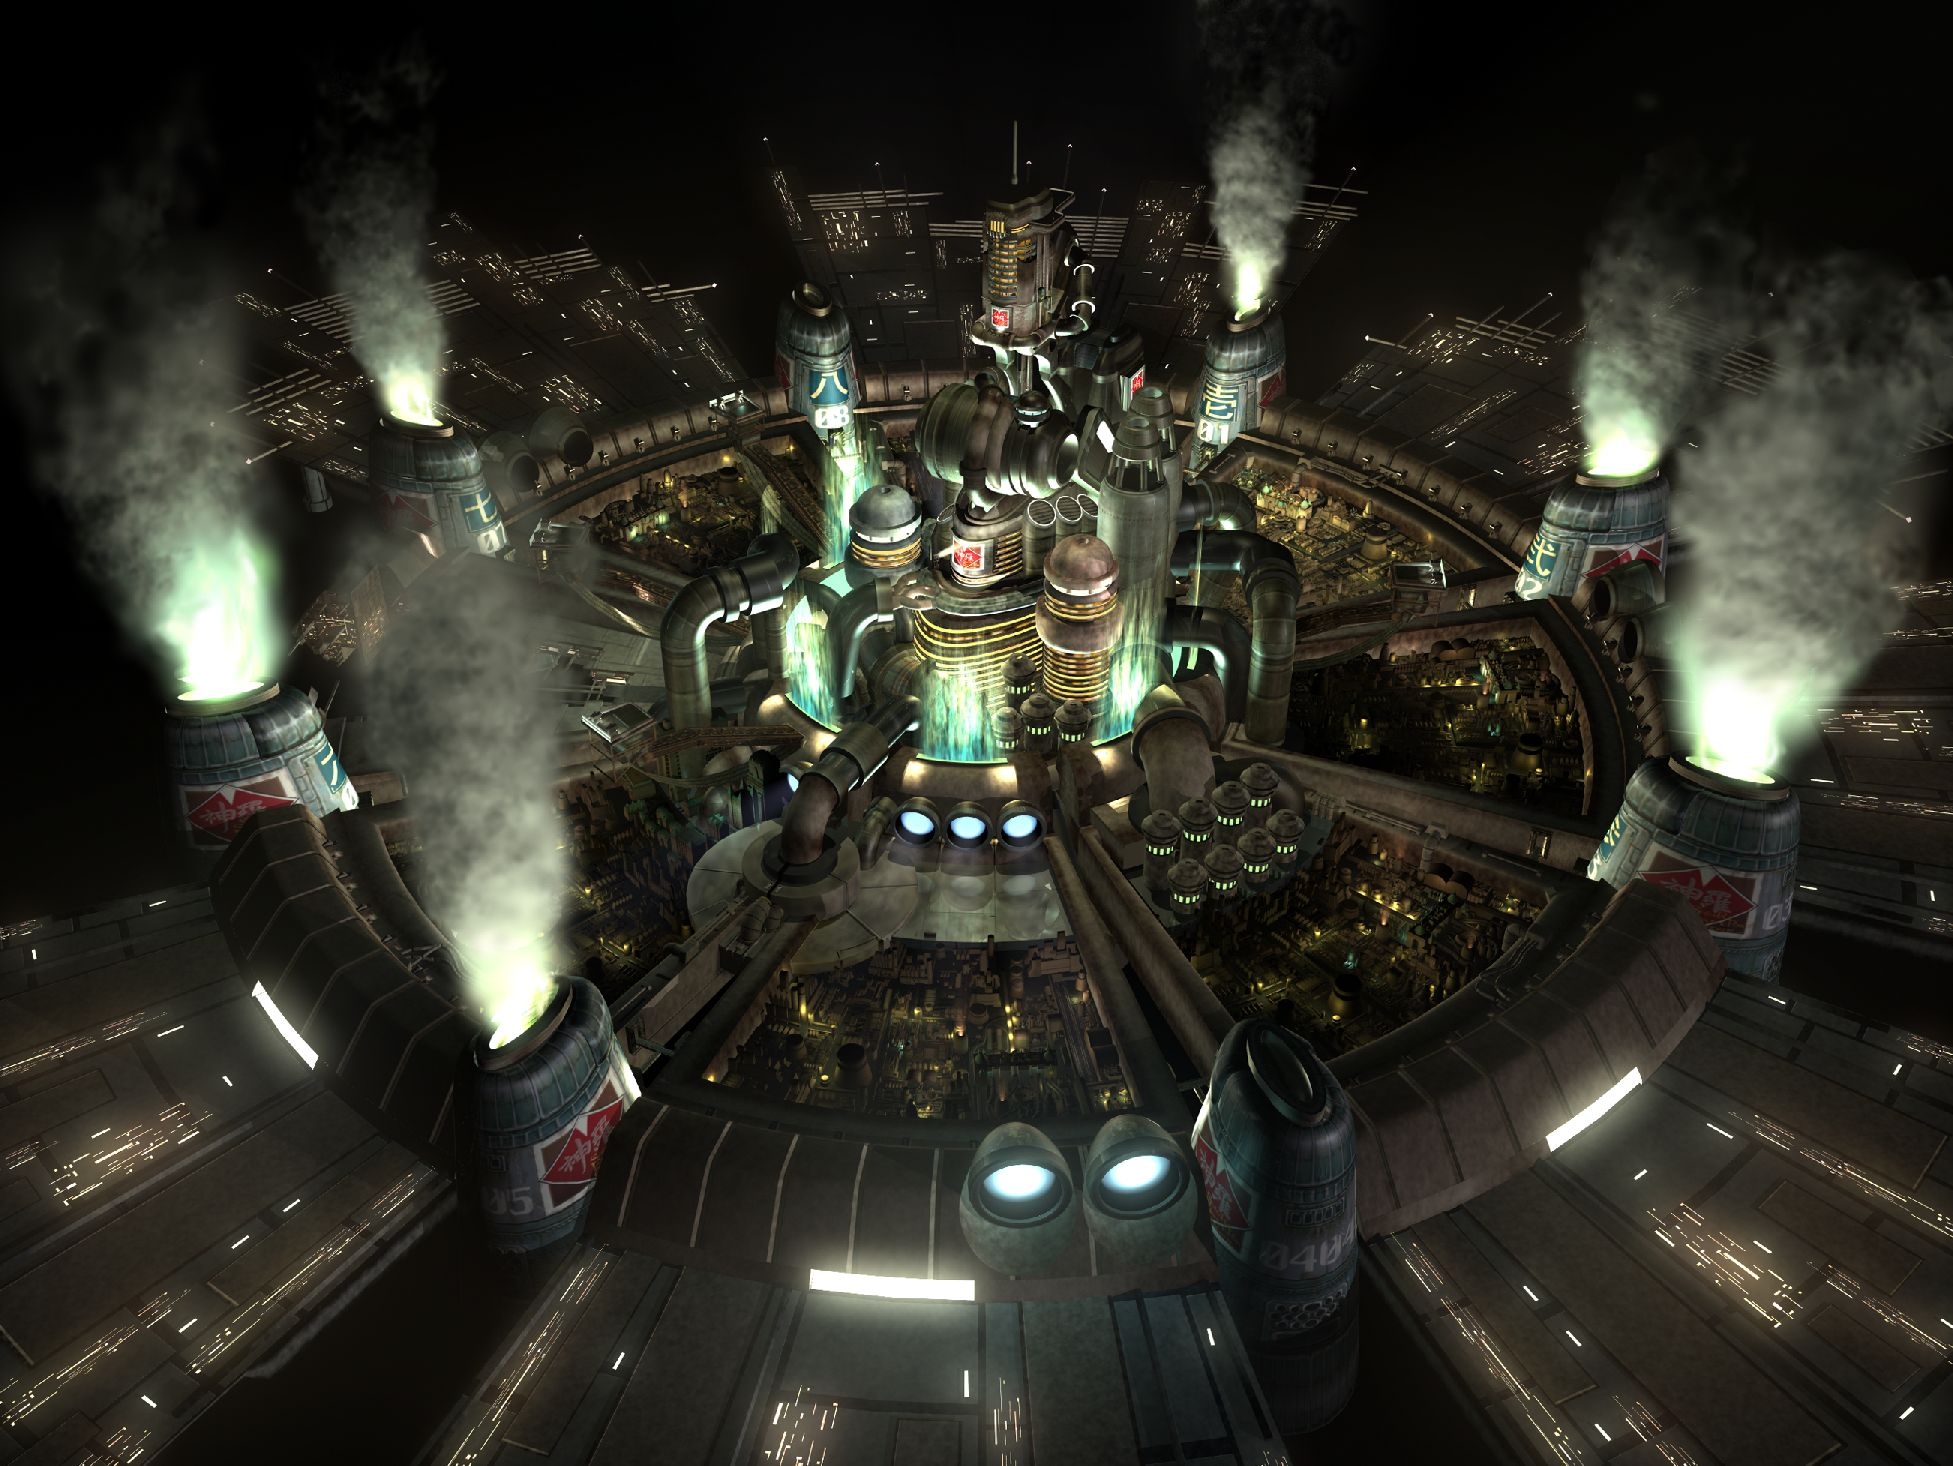 Final Fantasy VII On PC Is Definitely Not An HD Remake